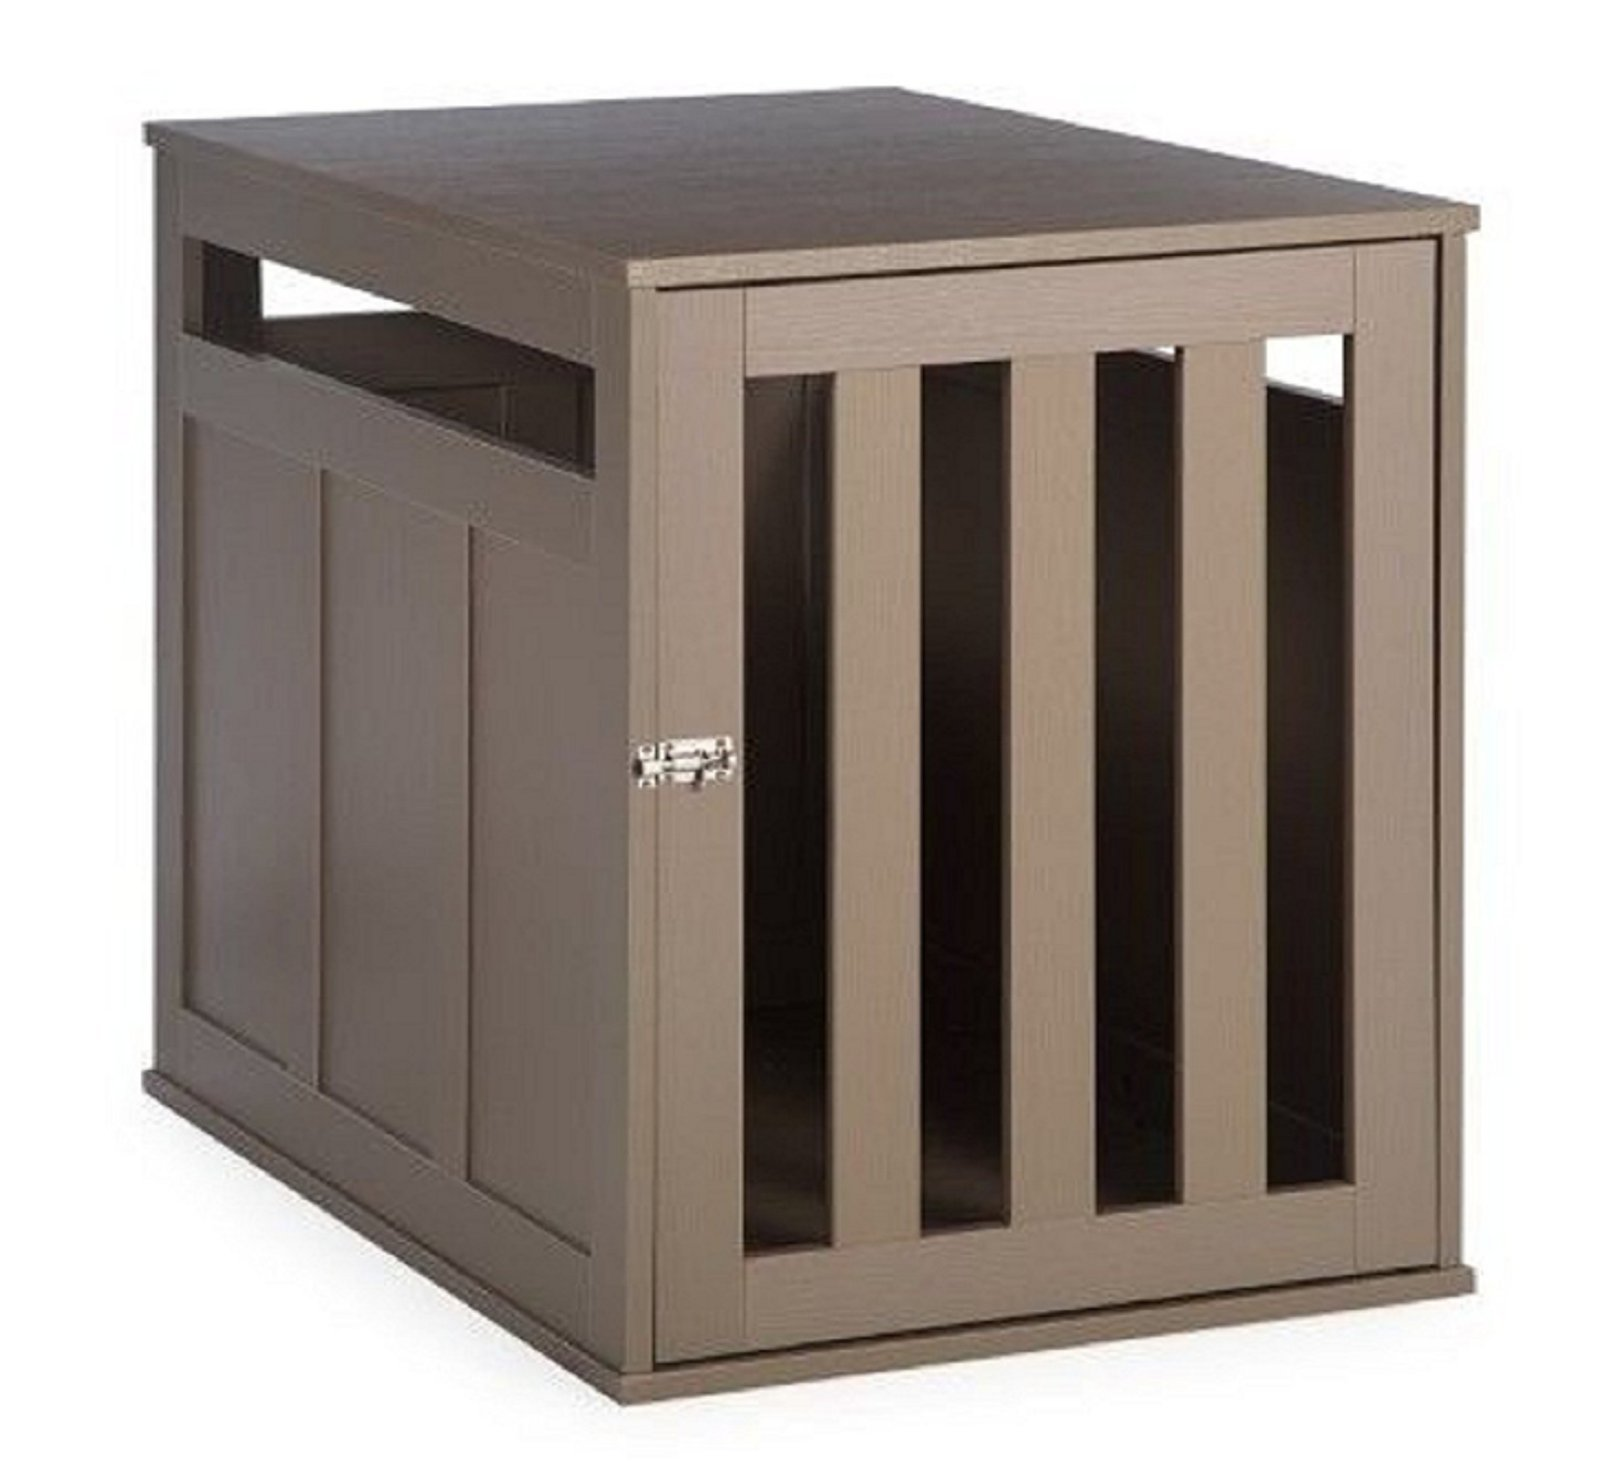 Hot Sale! End Table Dog Crate Pet Kennel Cage Wood Indoor House Driftwood Medium Home New